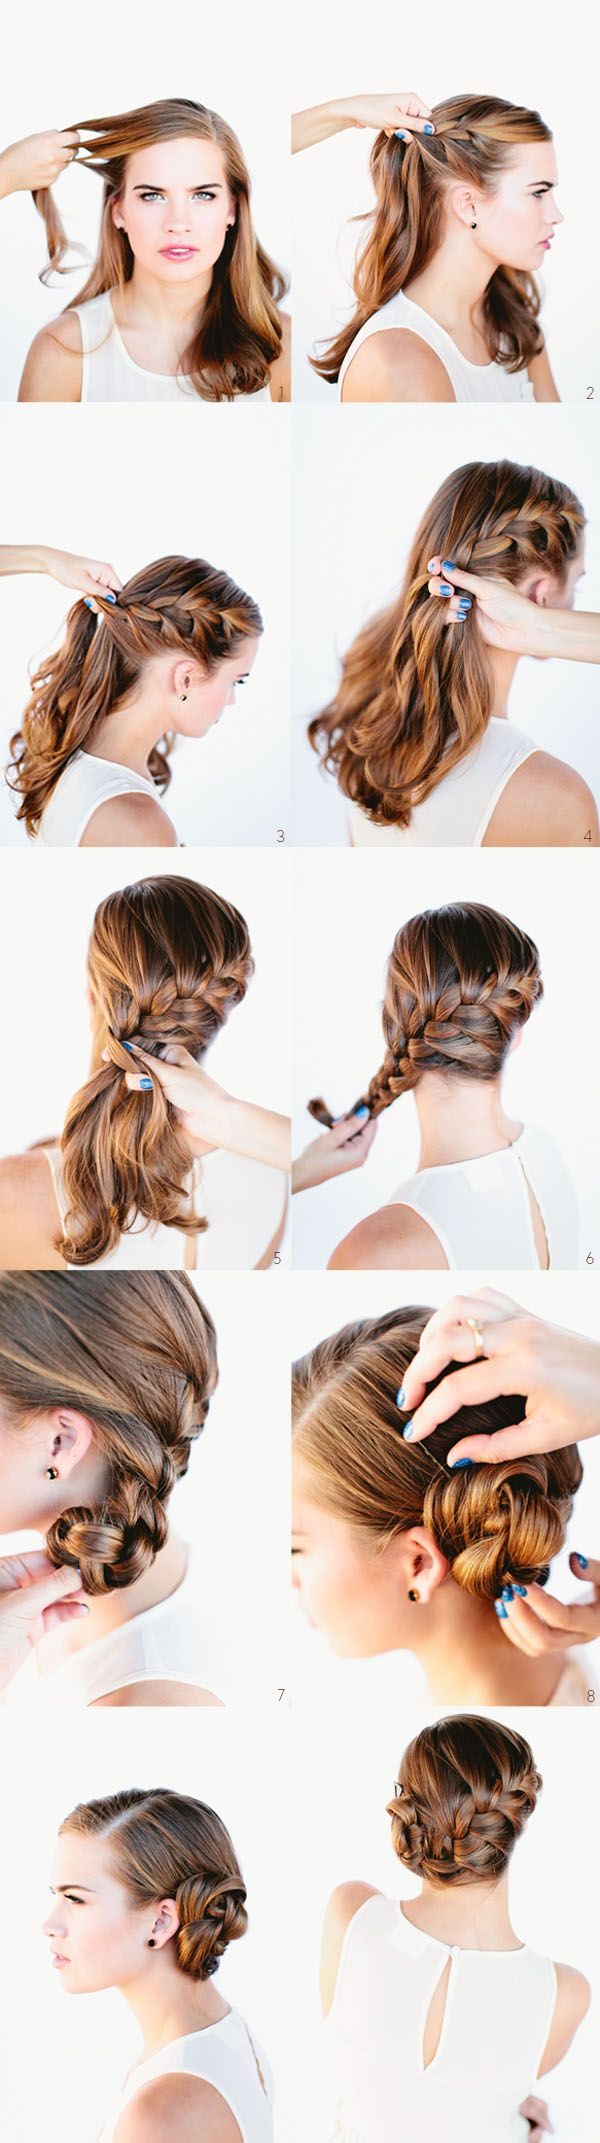 Moño bajo con trenza de raiz (French braid bud tutorial)